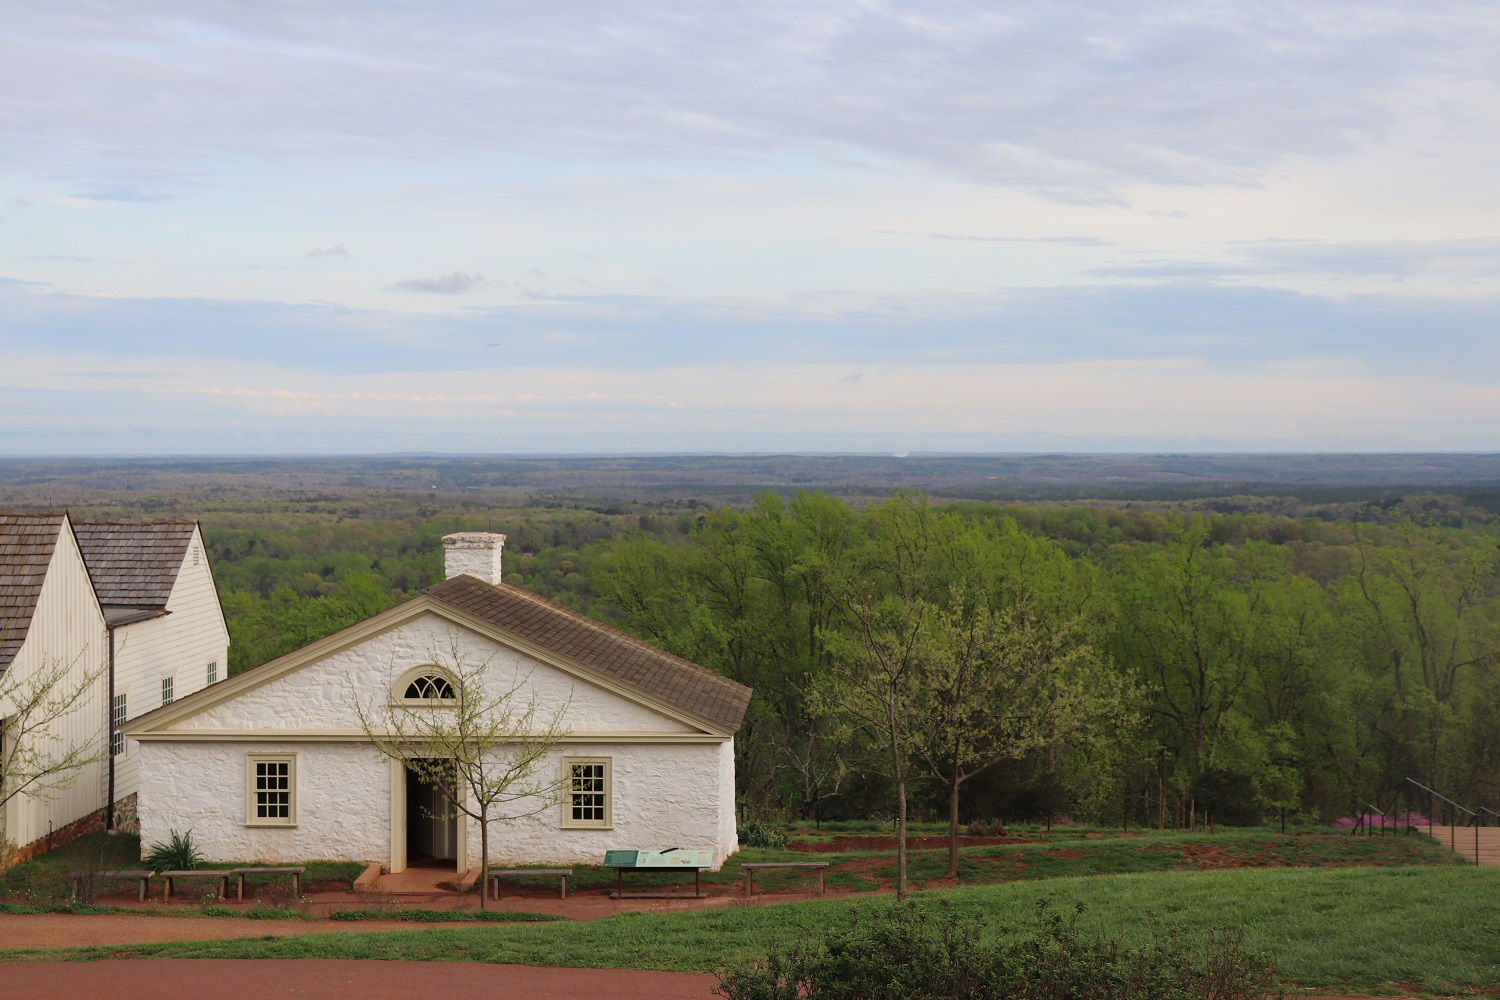 The Grounds of Monticello